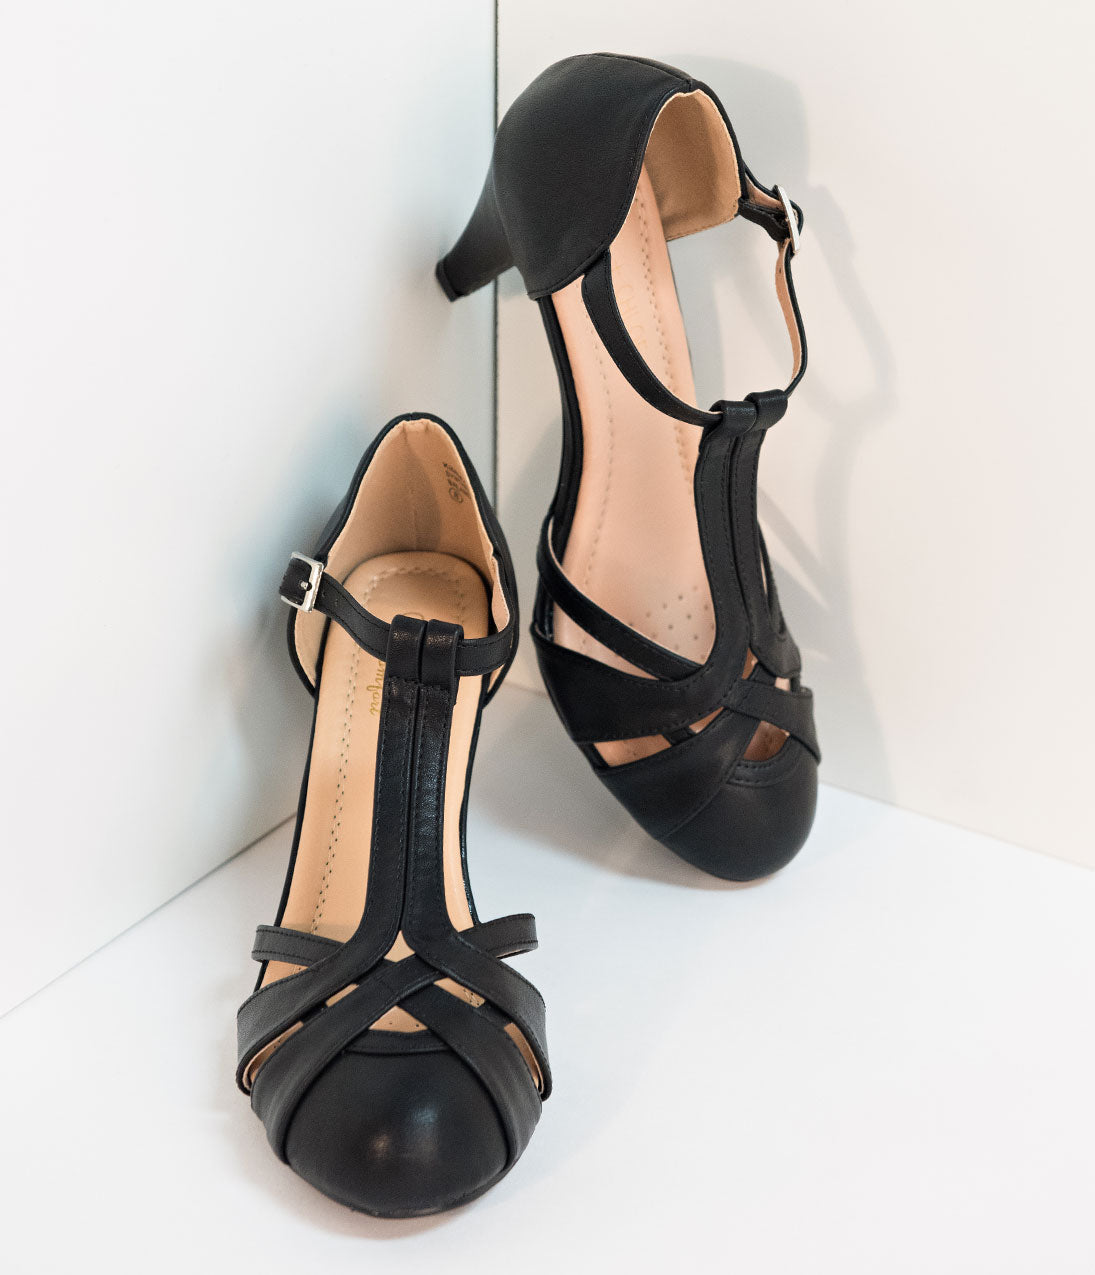 Vintage Shoes, Vintage Style Shoes Retro Style Black Pleather Cutout Kimmy T-Strap Heels $44.00 AT vintagedancer.com